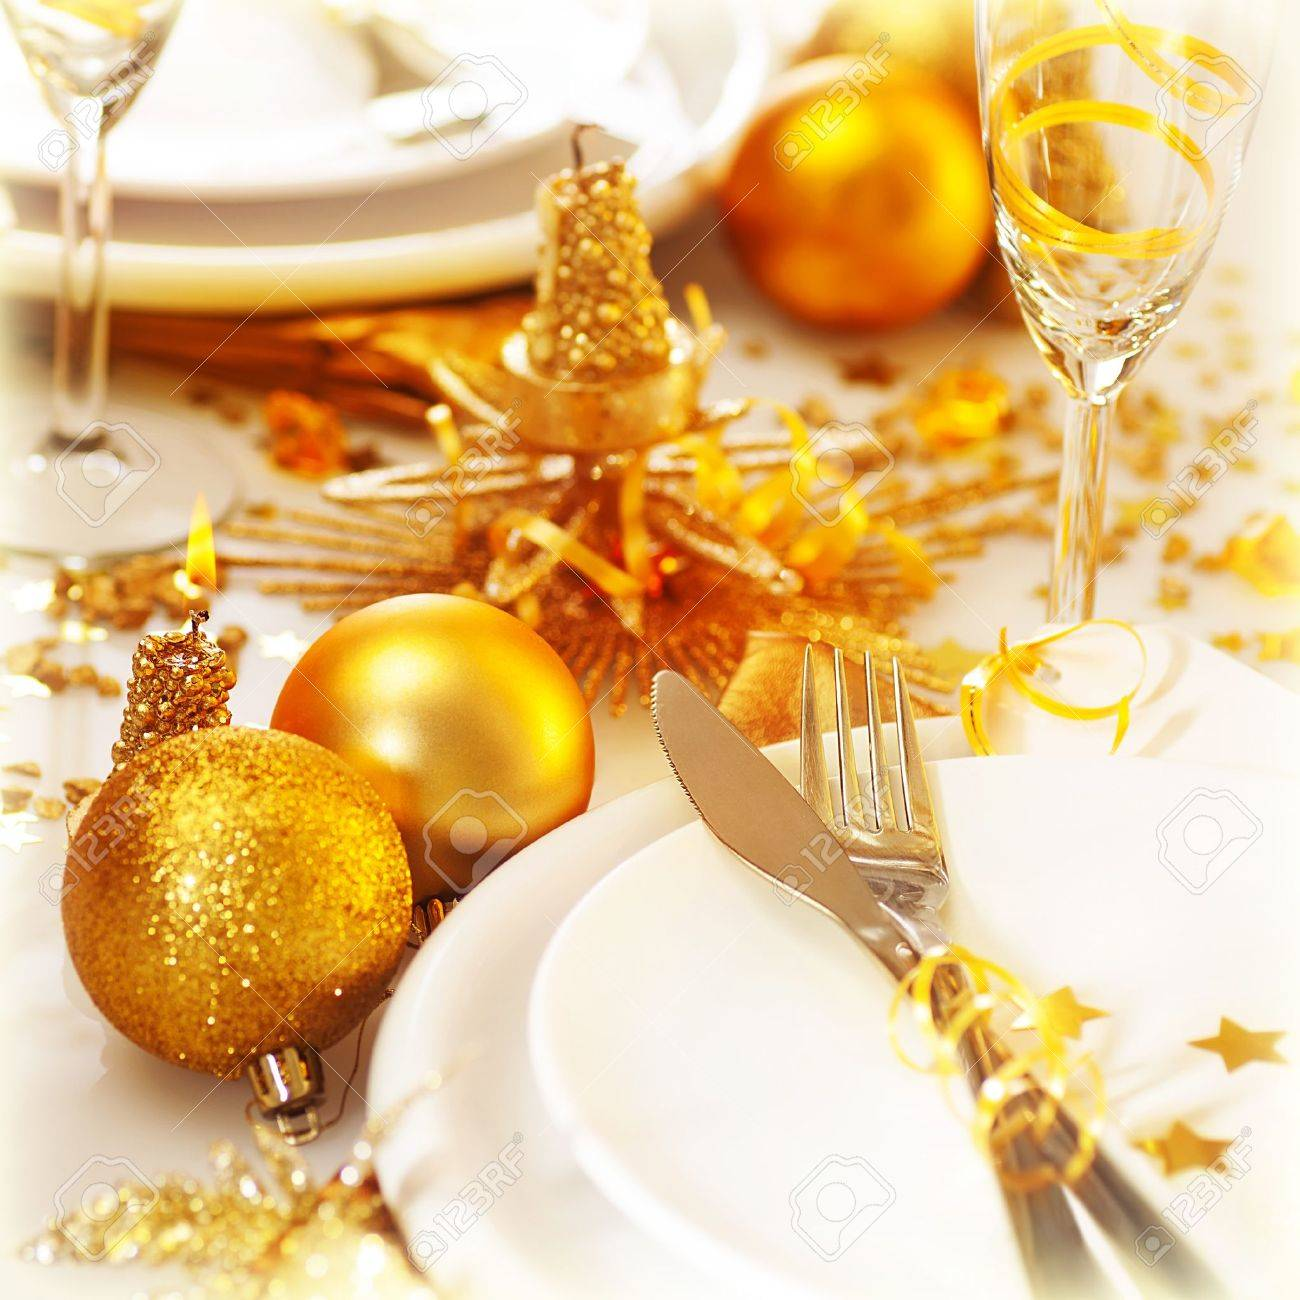 Christmas table decorations gold - Picture Of Christmas Table Setting Still Life Festive White Utensil Decorated With Golden Candle And